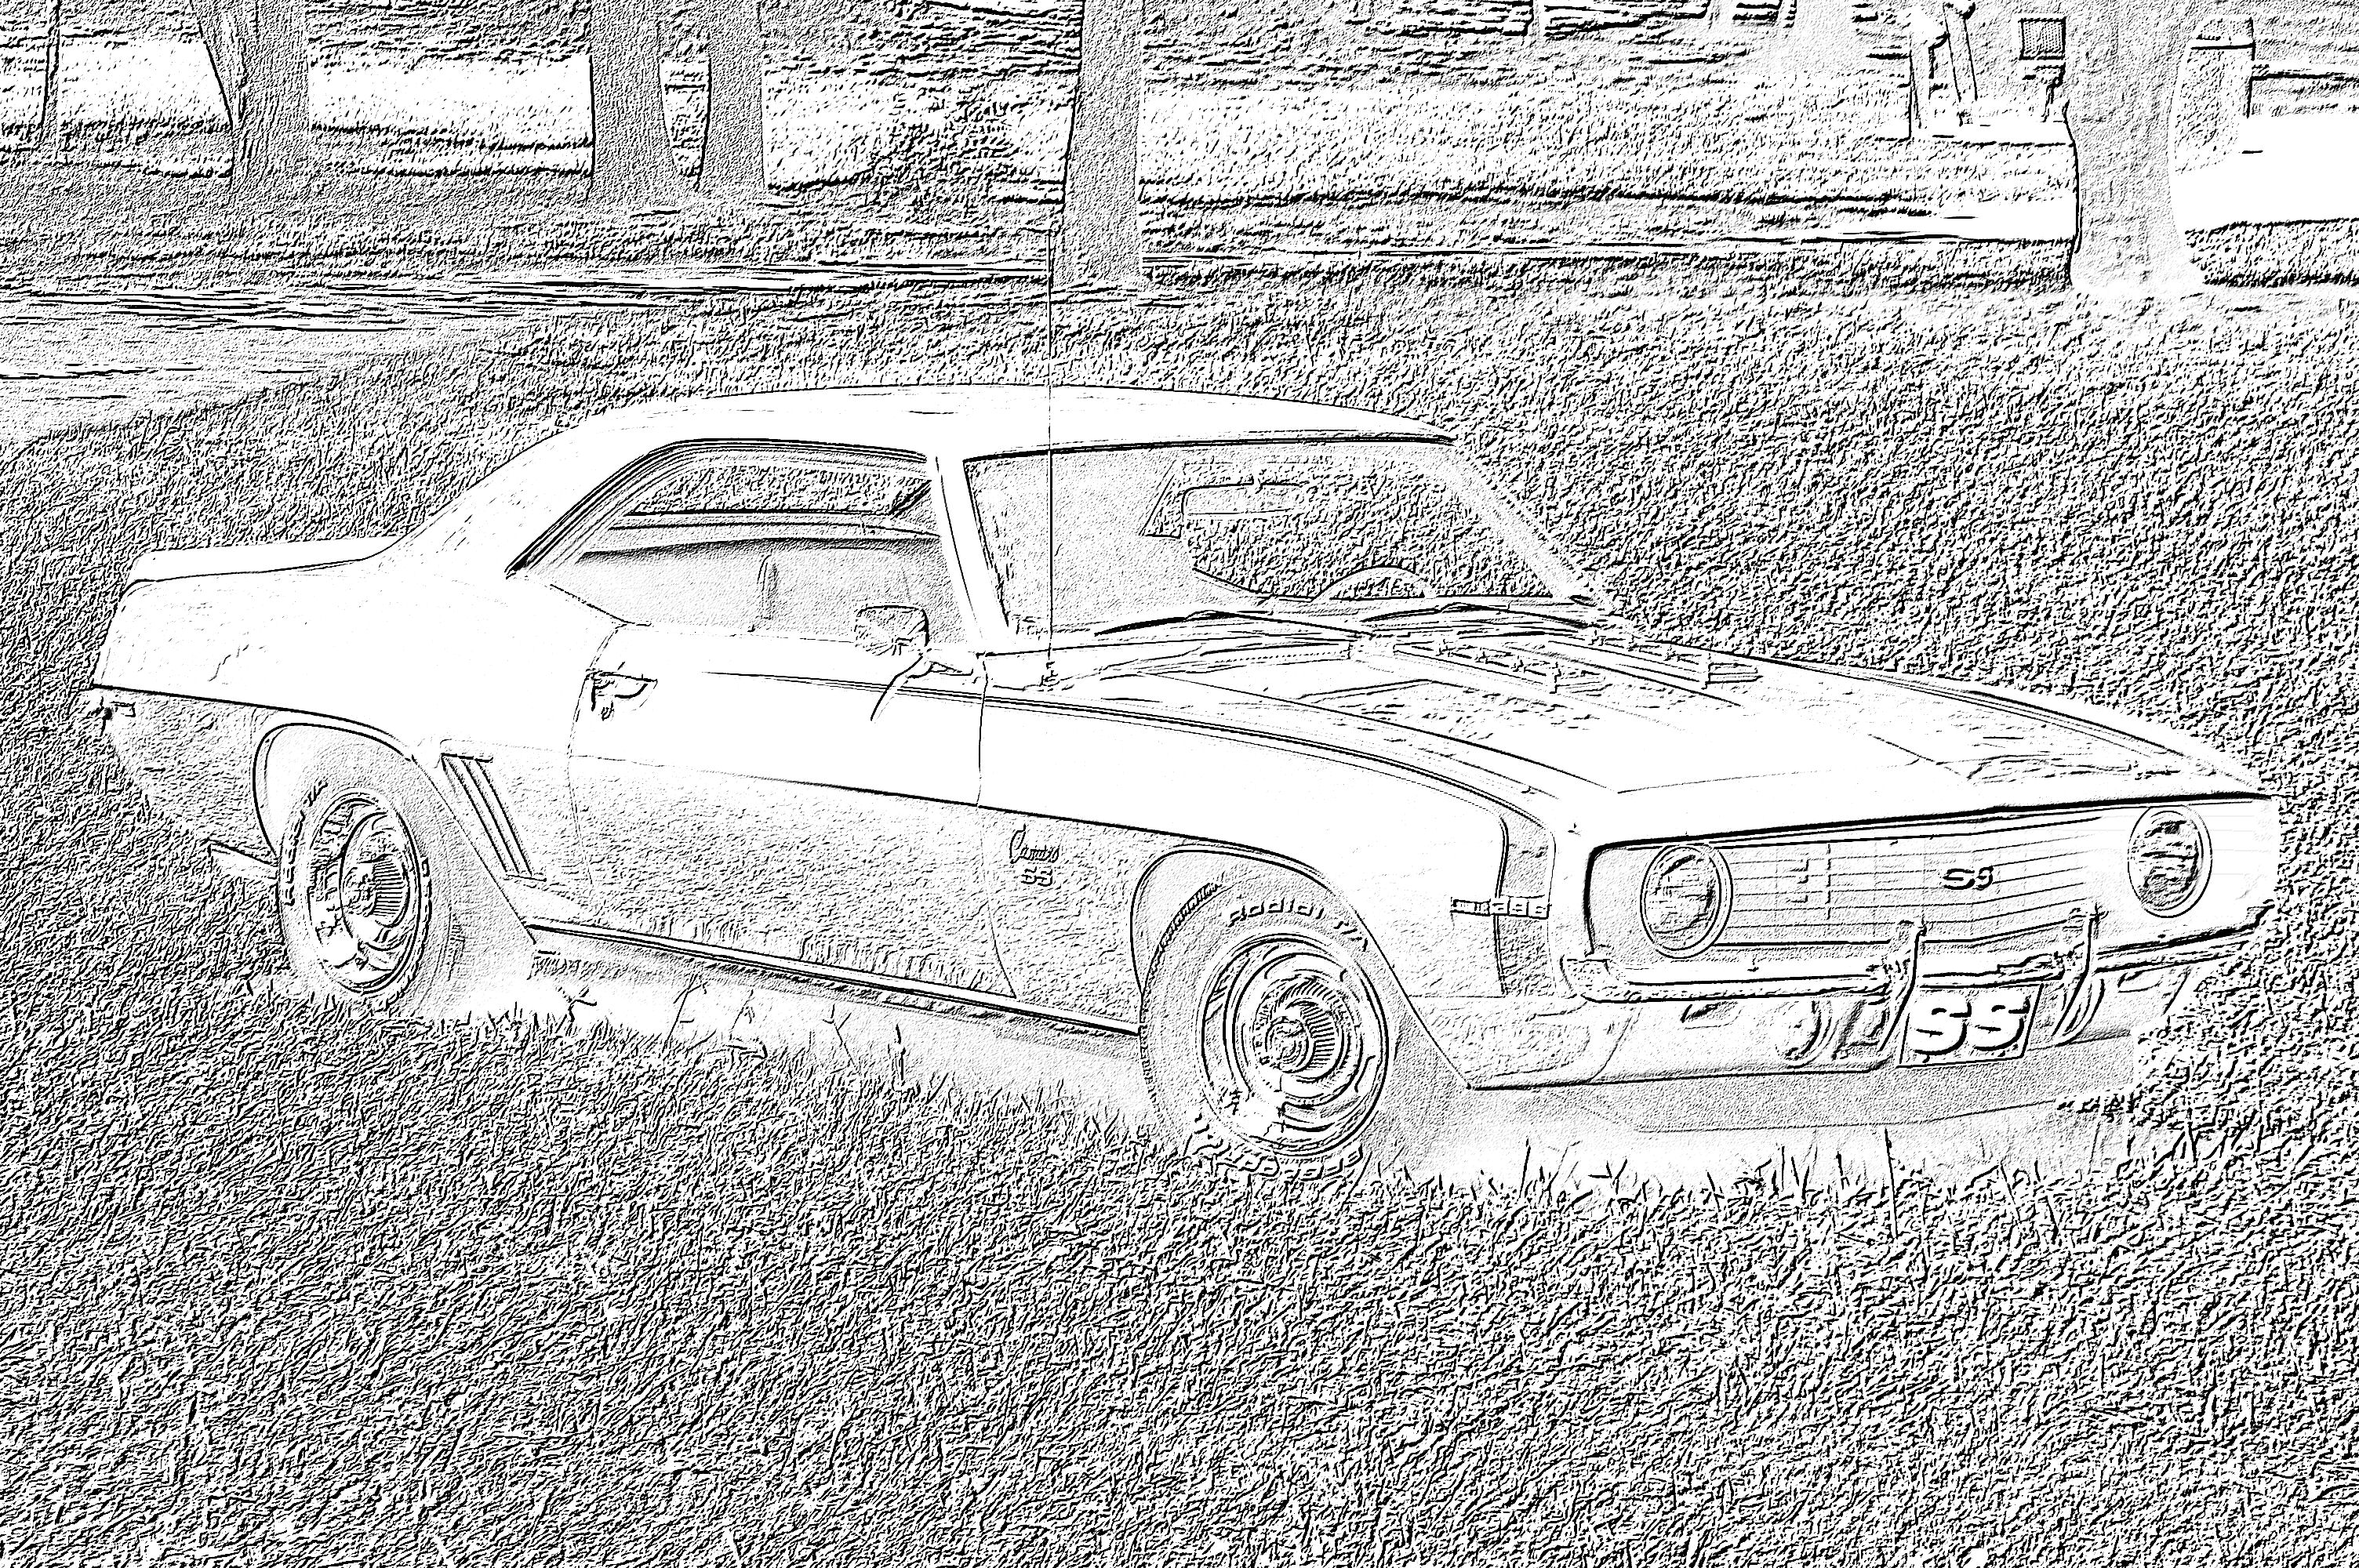 69 camaro coloring pages photo - 1